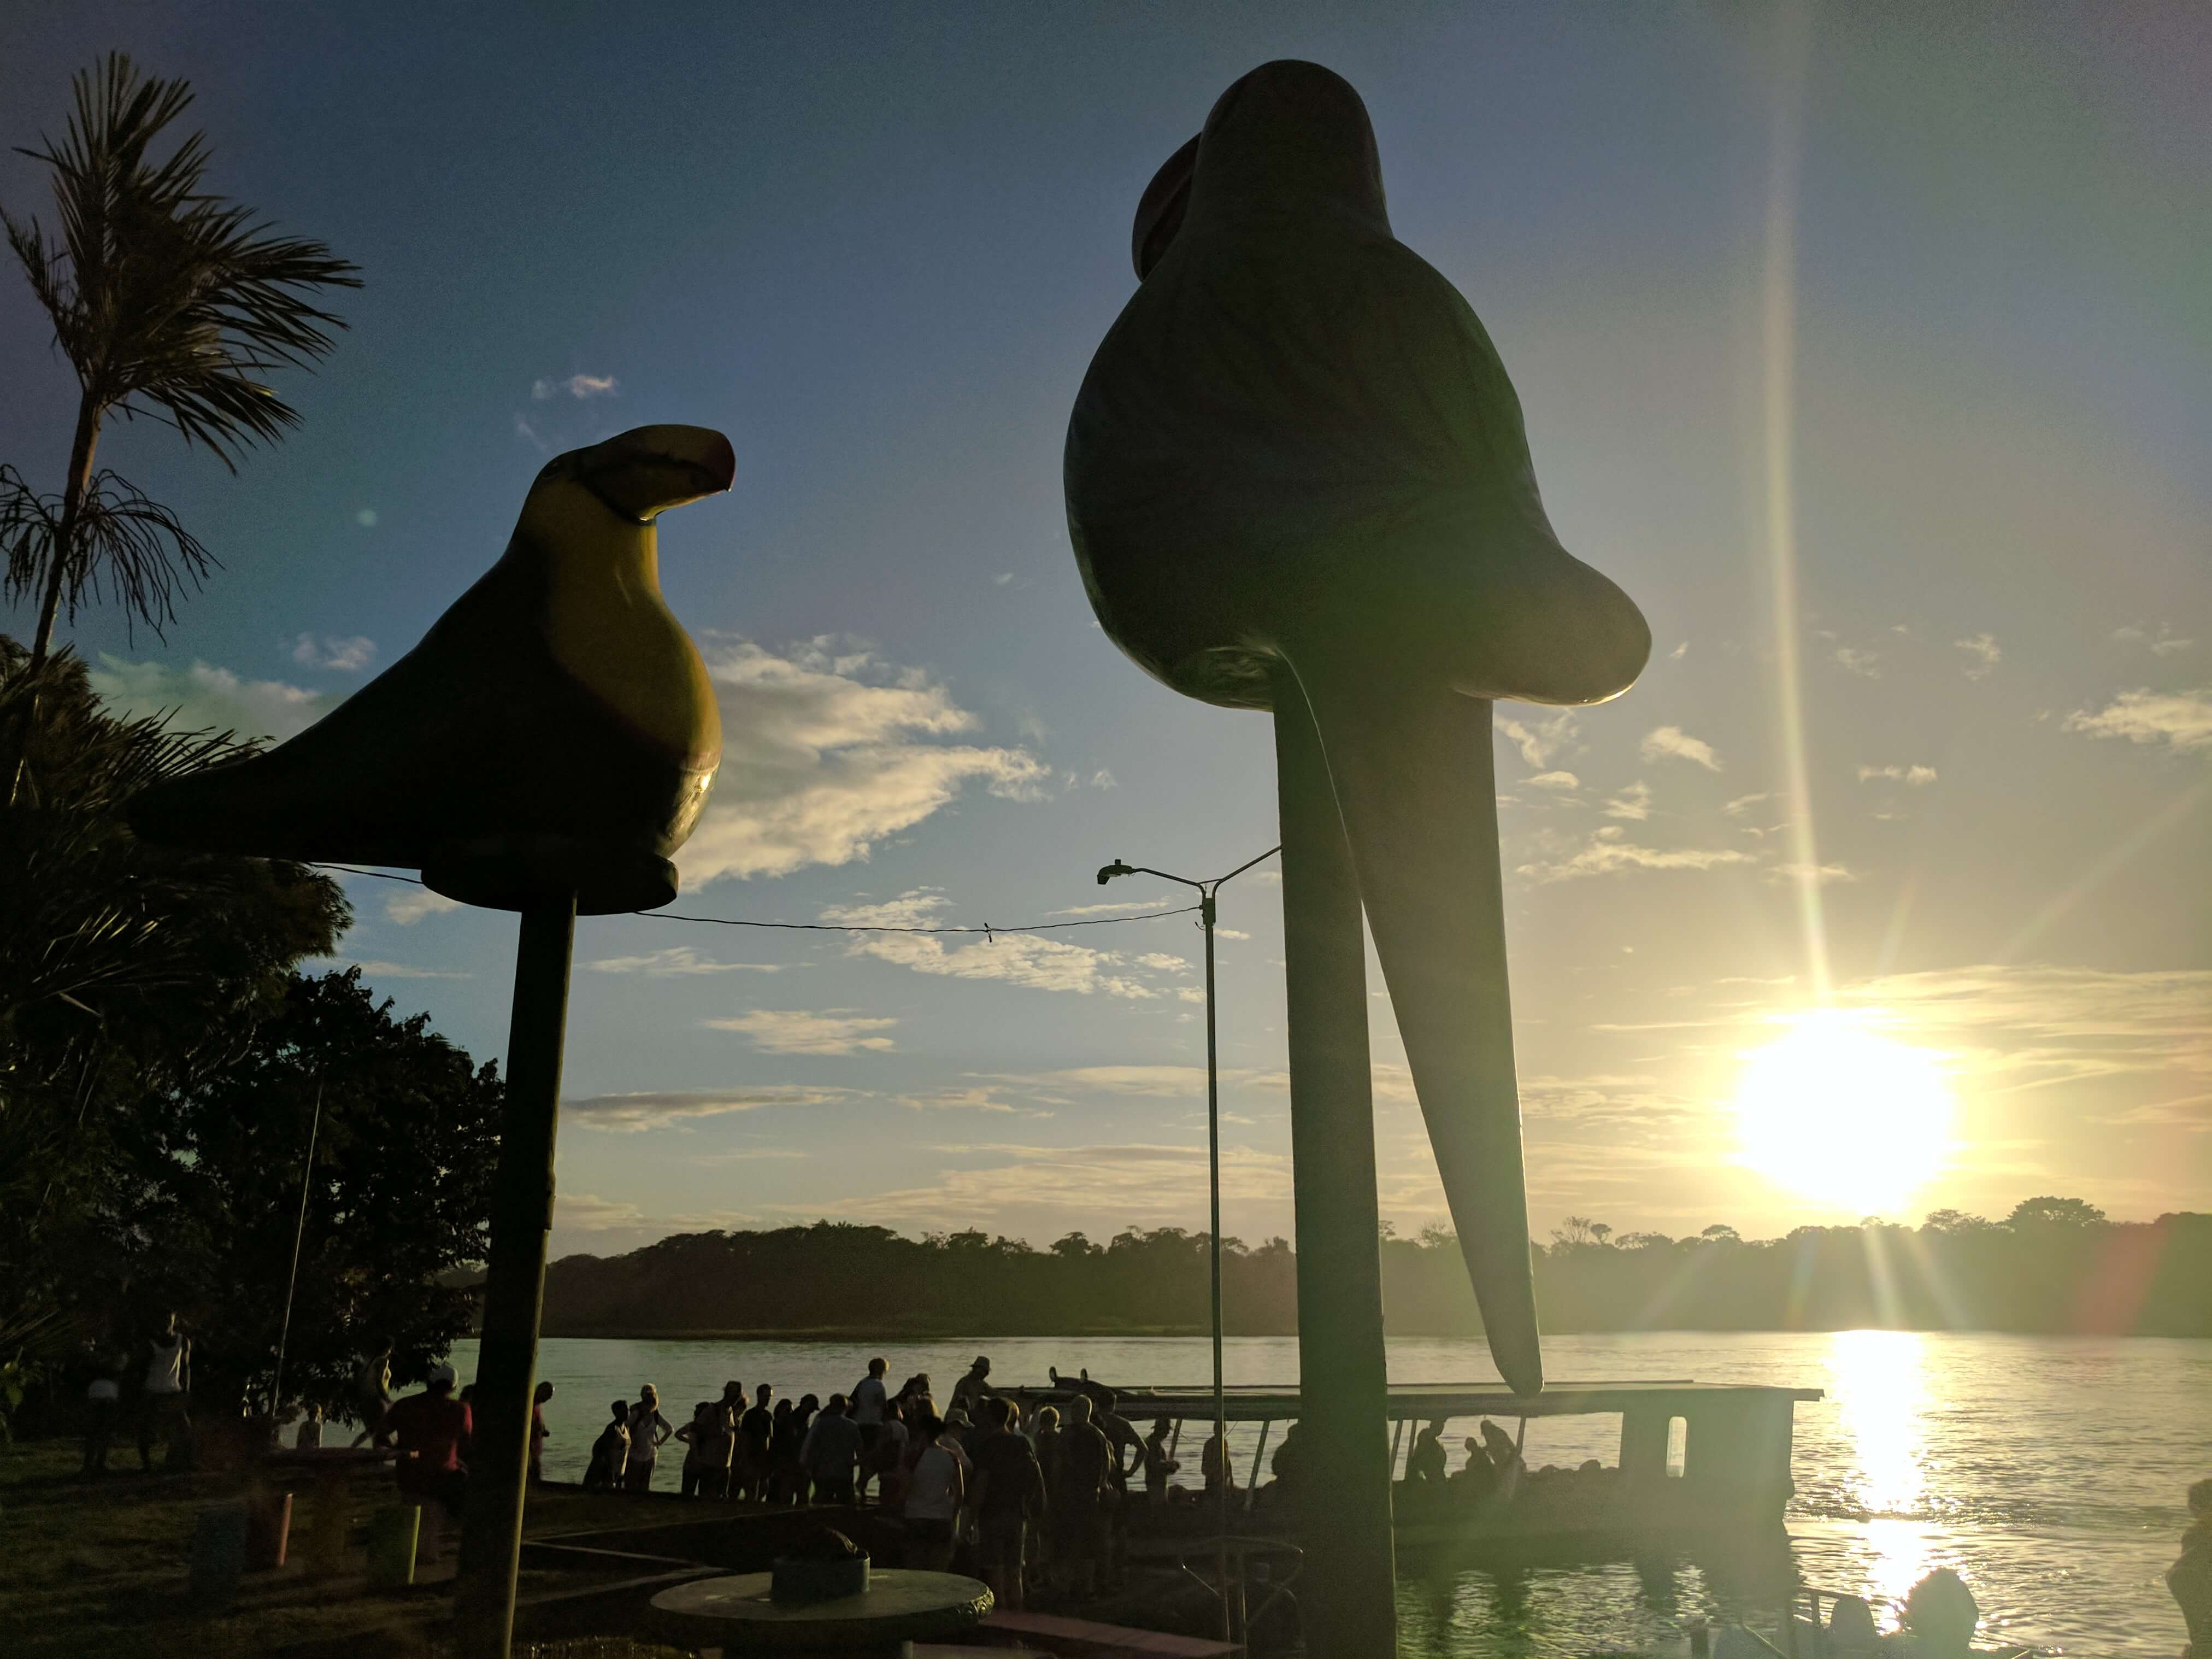 Costa Rica Itinerary - the sun setting on Tortugero village through the large statutes of tropical birds